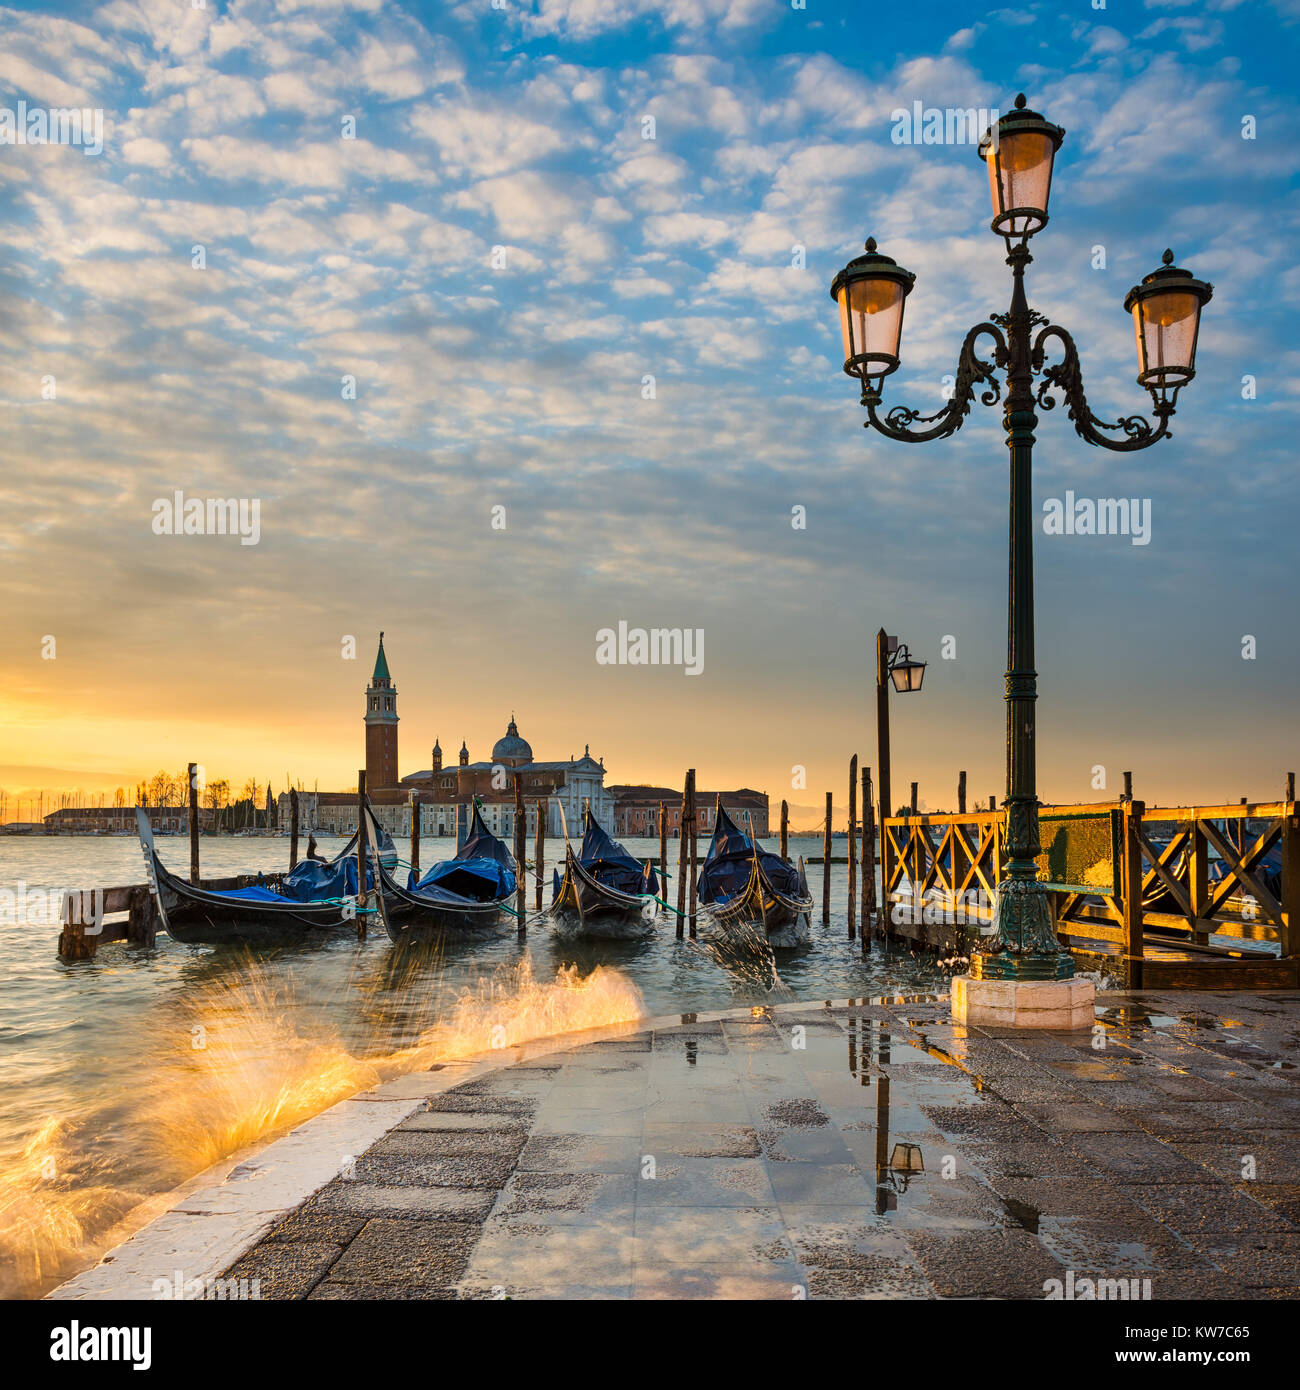 Gondolas on the Grand Canal at sunrise in Venice, Italy - Stock Image